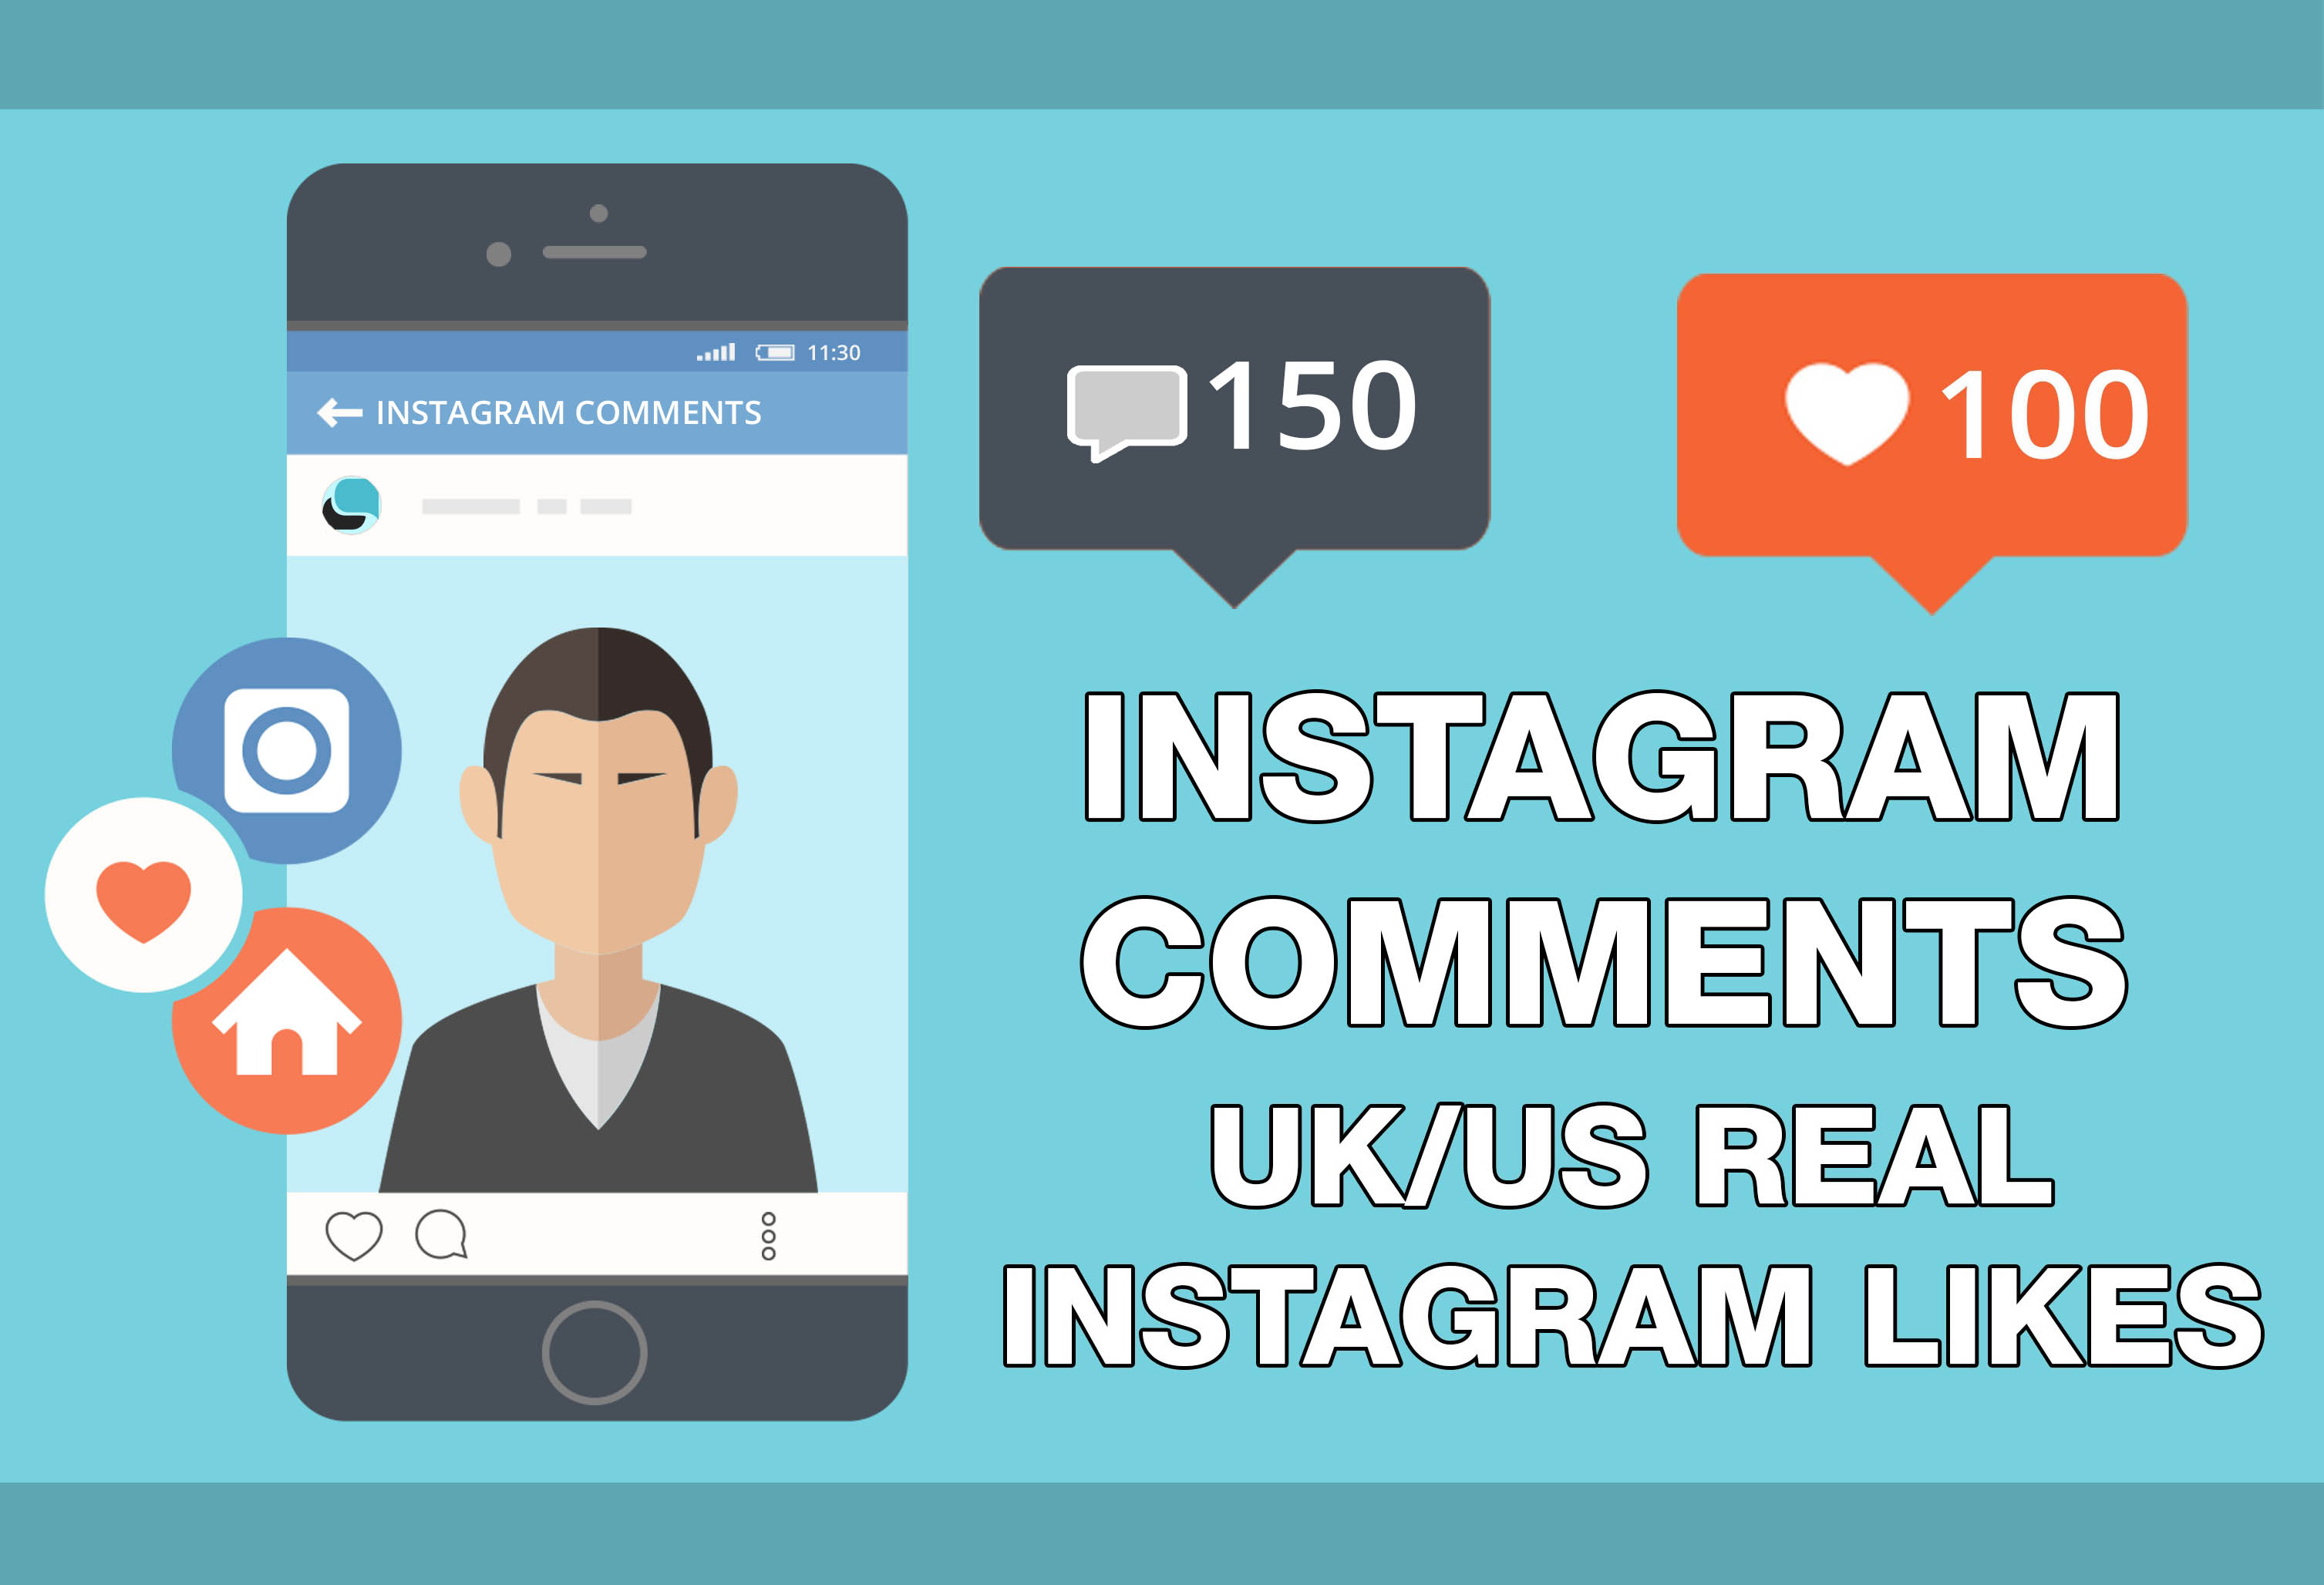 DELIVER 500 REAL UK/US BUSINESS & PERSONAL INSTAGRAM LIKES & 15 REAL INSTAGRAM COMMENTS